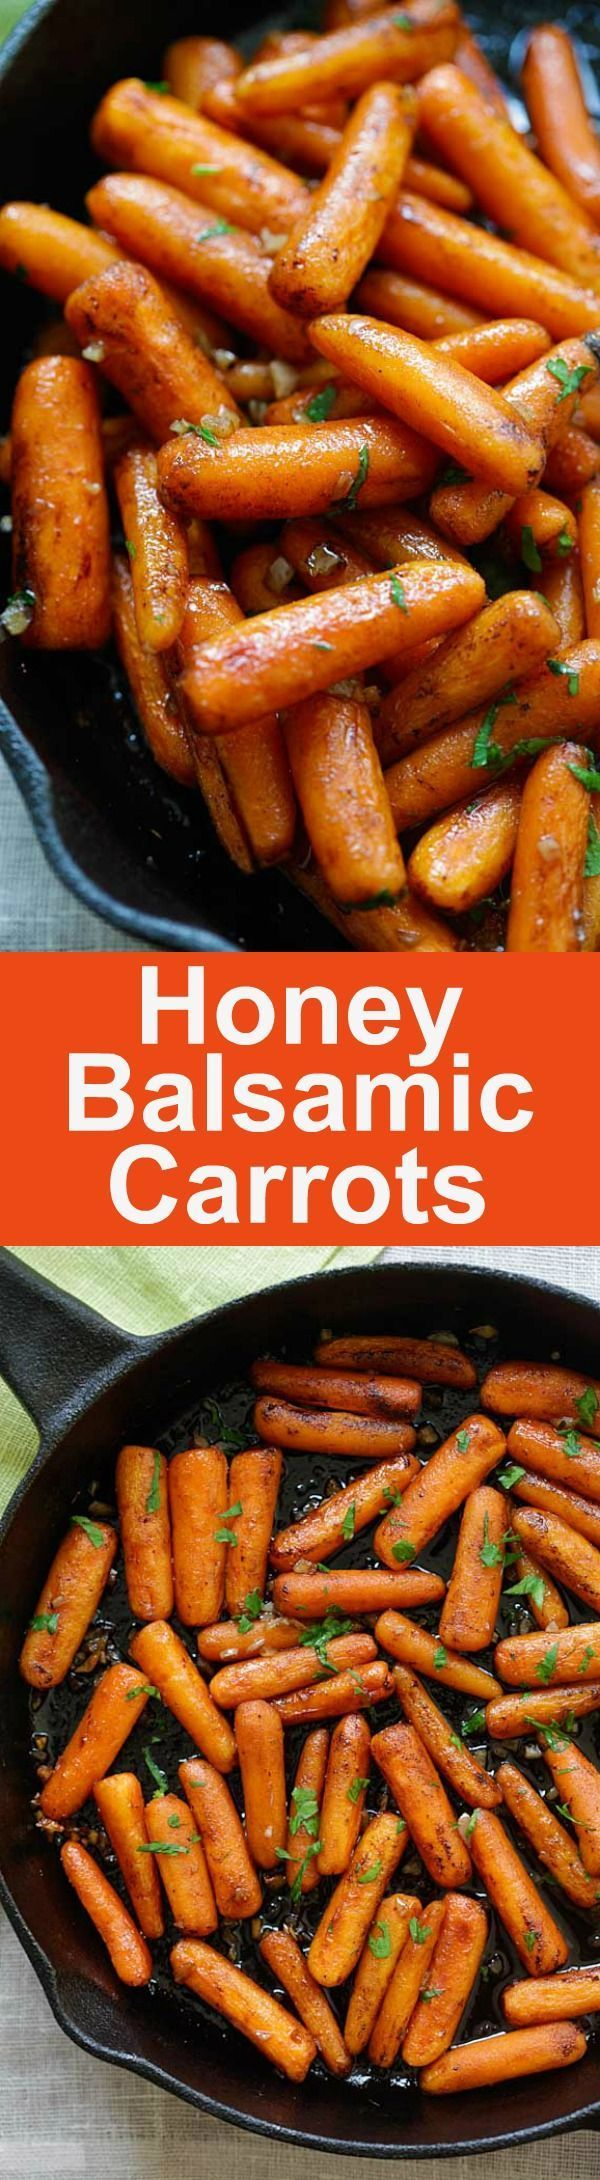 Honey Balsamic Carrots - oven-roasted carrots with honey balsamic glaze. The easiest and best balsamic carrots recipe ever | http://rasamalaysia.com